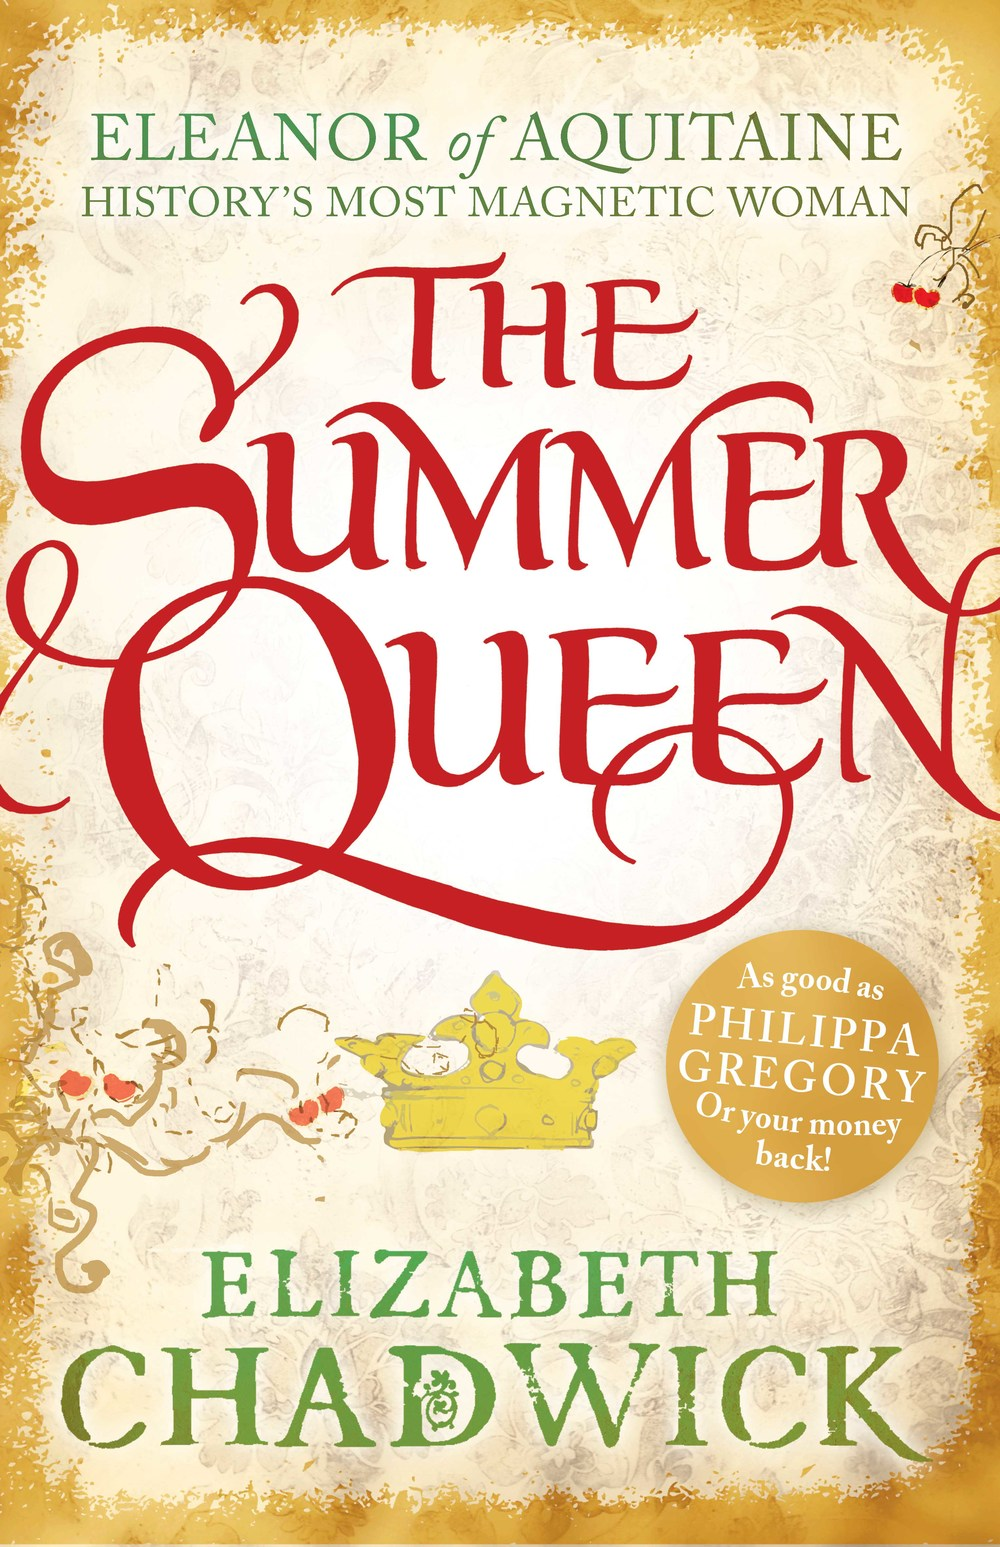 THE SUMMER QUEEN Medieval fiction, 496 pages Sphere, 20 June 2013 First of the Eleanor of Aquitaine trilogy, taking an entirely fresh approach to this Queen who was a wife to, and mother of, kings.